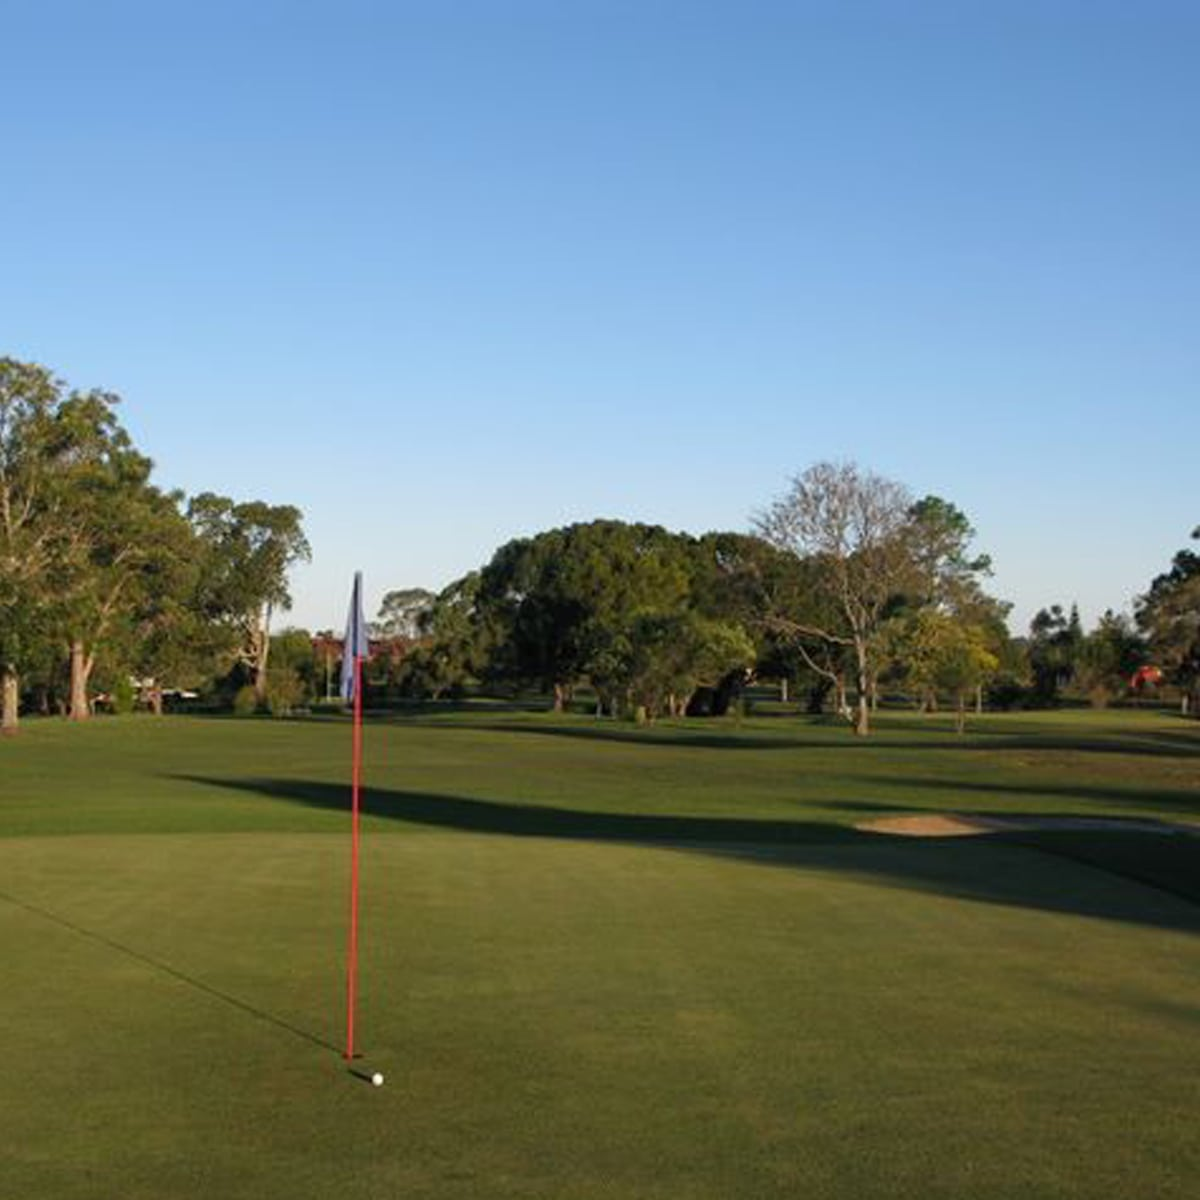 Views of the golf course at Coraki Golf Club